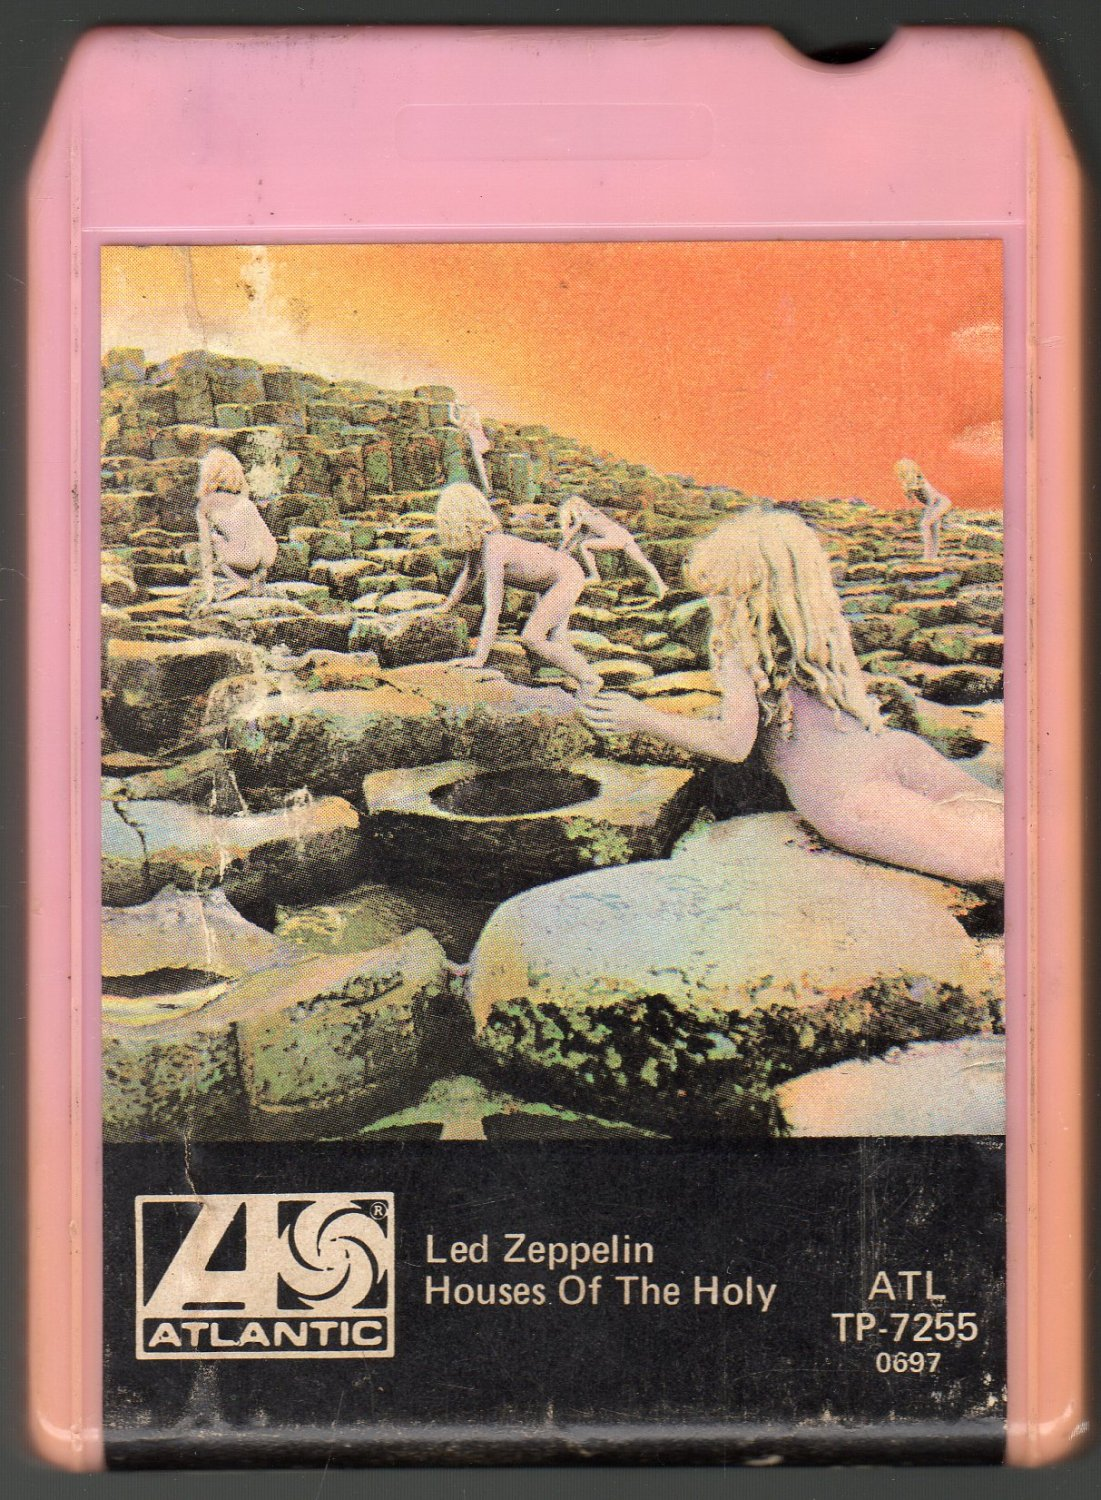 led zeppelin houses of the holy 1973 atlantic a7 sold 8 track tape. Black Bedroom Furniture Sets. Home Design Ideas